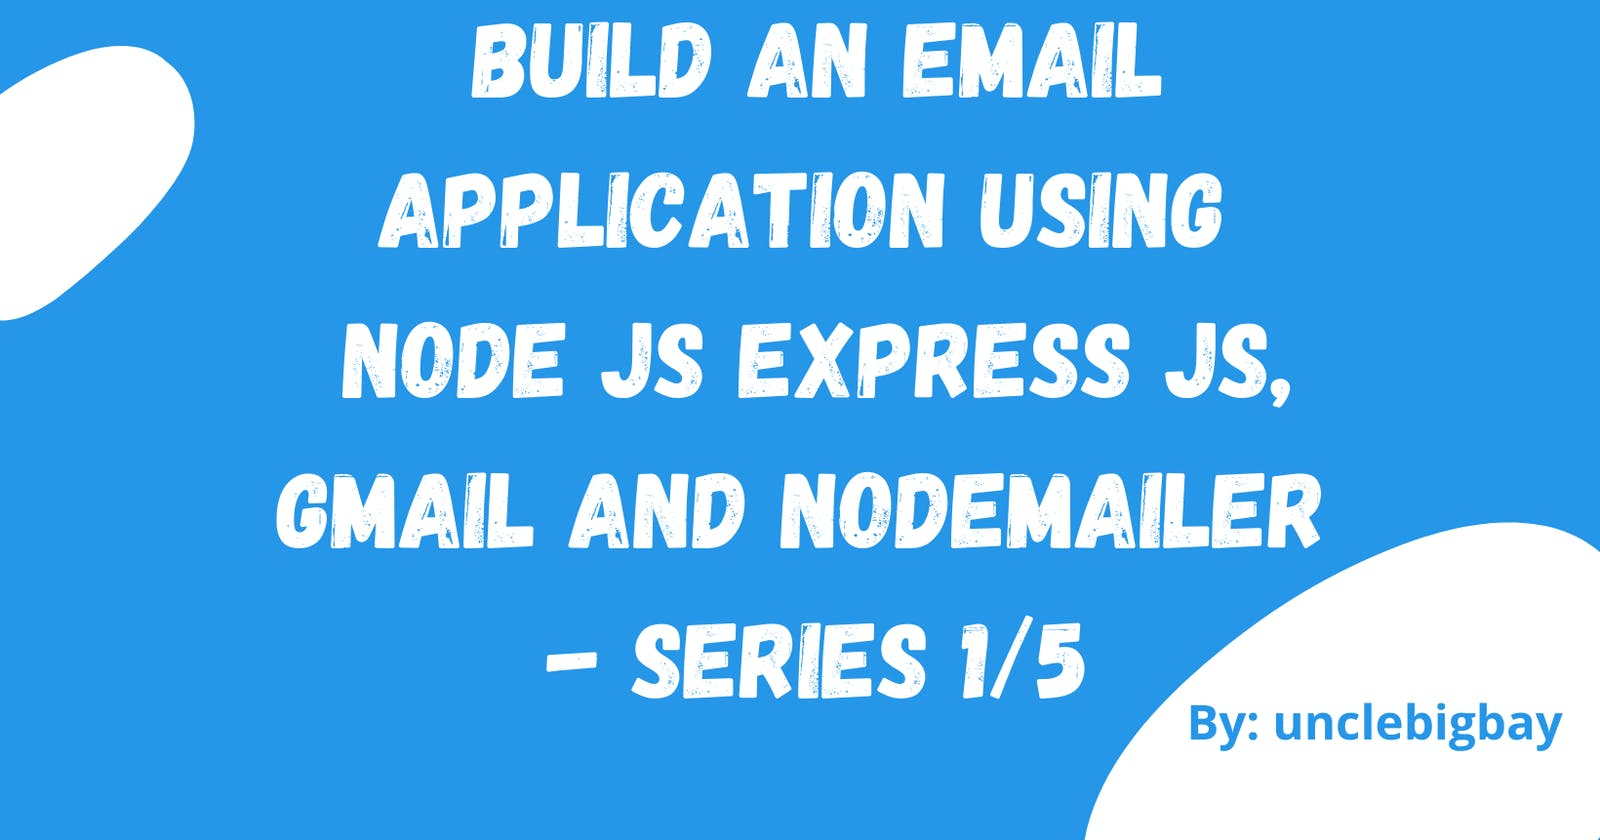 Build an Email Application using Node JS Express JS with Gmail and Nodemailer - Series 1/5